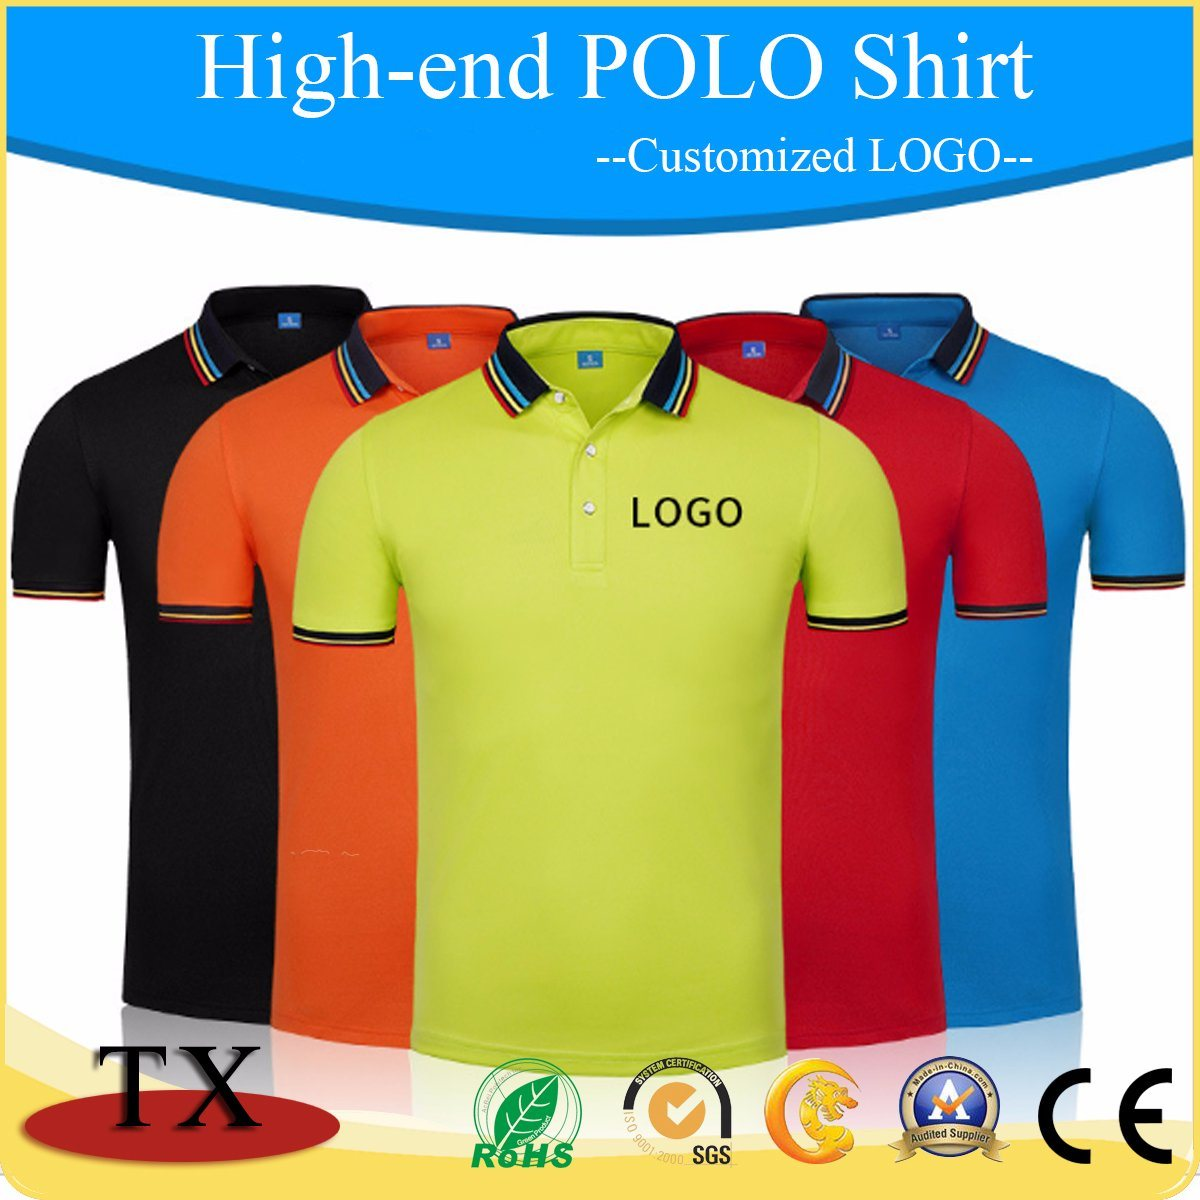 High Quality Polo Shirts Without Logo Chad Crowley Productions